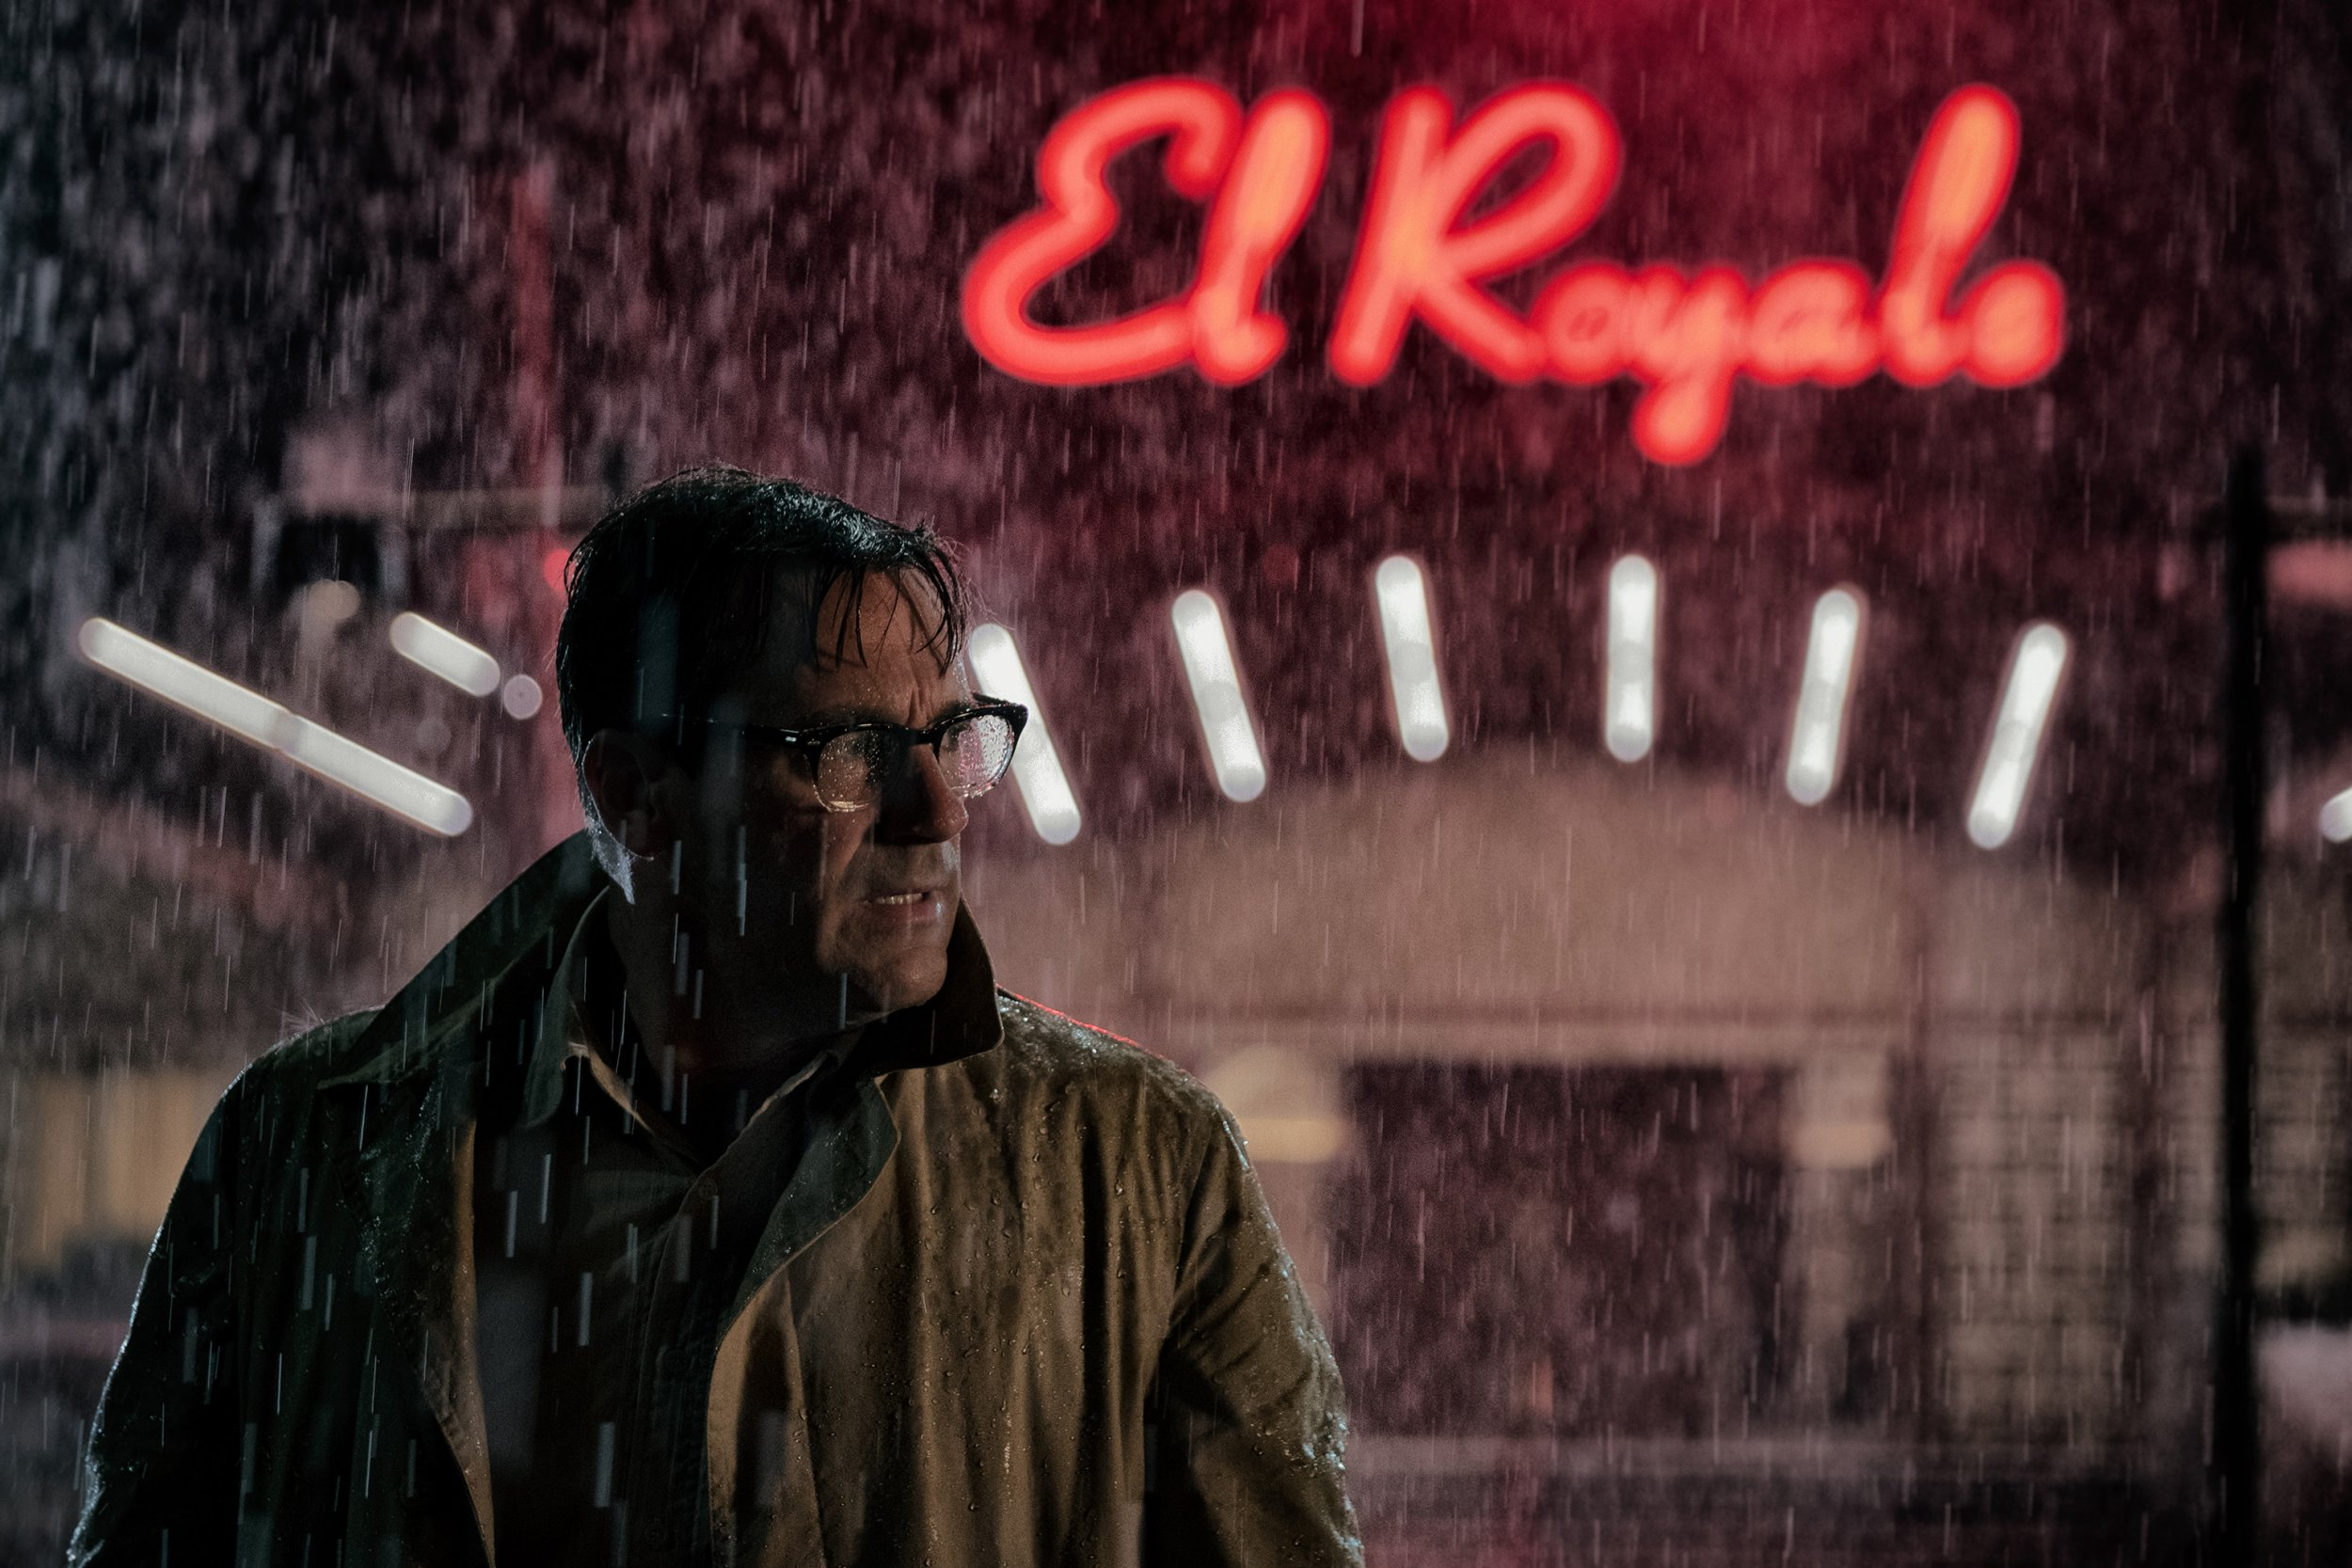 Why 'Bad Times at the El Royale' Director Struggled to Keep Film's Twist a Surprise